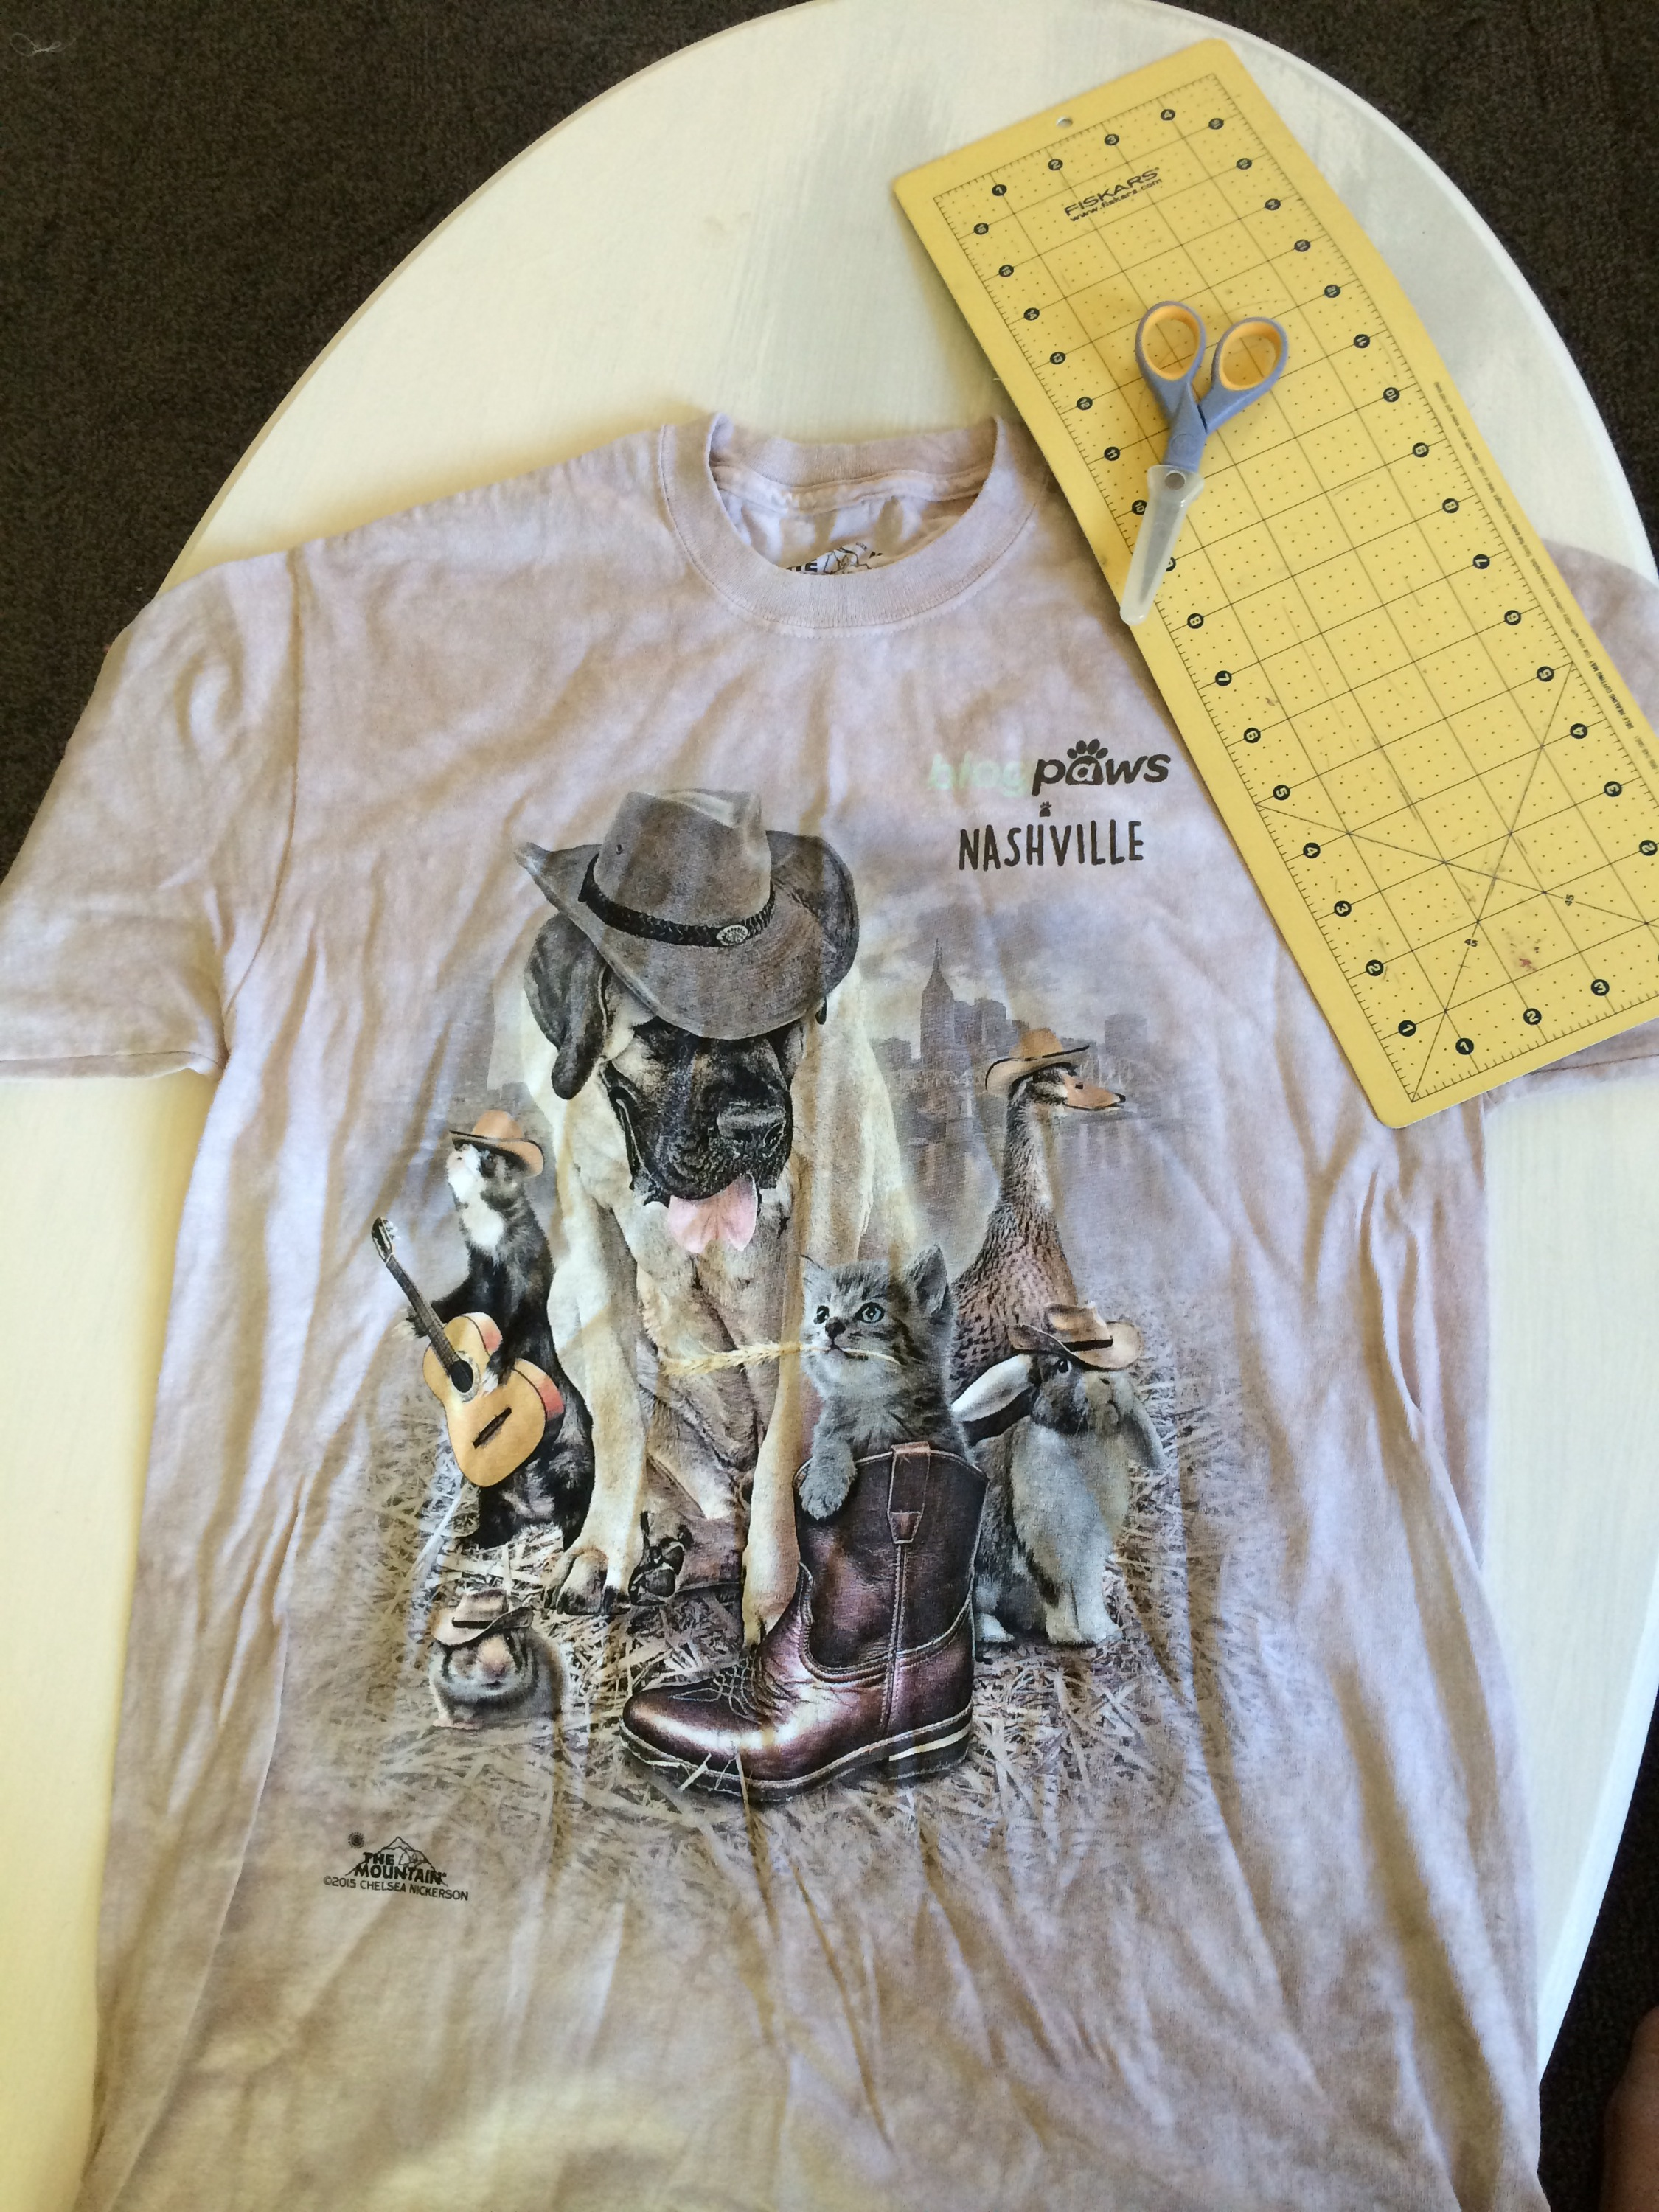 You will need a big boxy t-shirt, scissors, and a cutting mat or book to use as a guide.